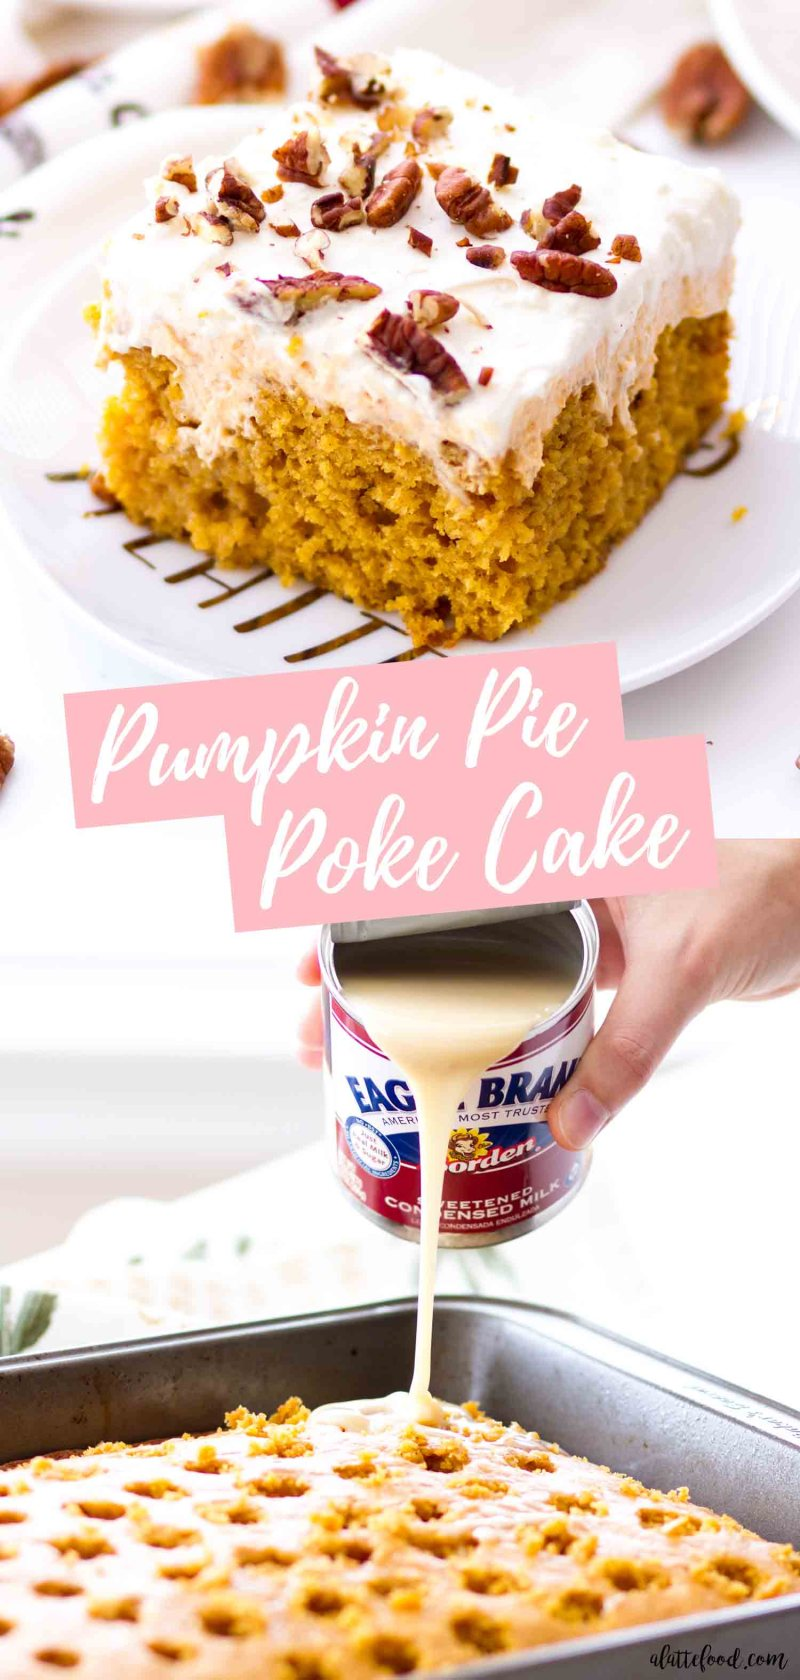 pumpkin pie poke cake collage